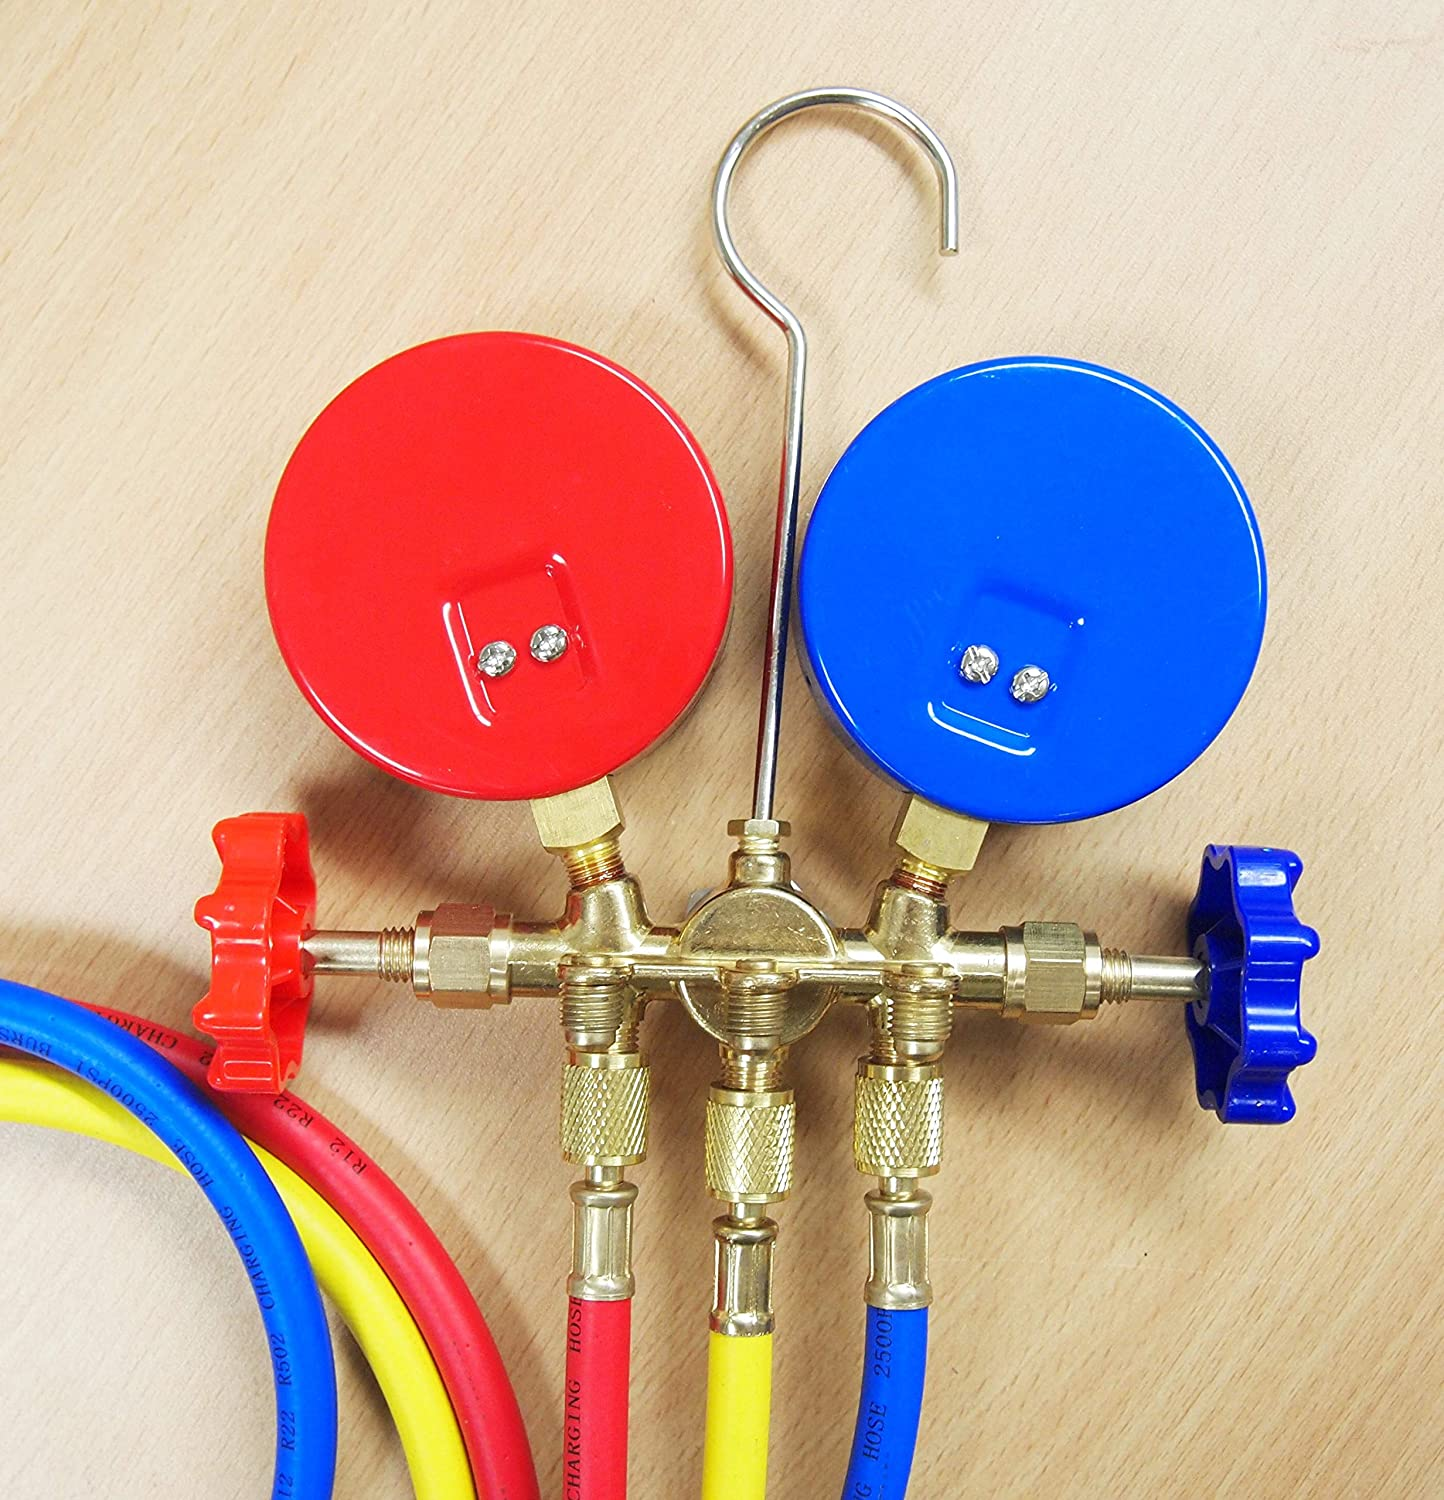 R12 R22 R134a R404a Manifold Gauge Set 3 Gauge HVAC A//C Refrigeration Charging Service